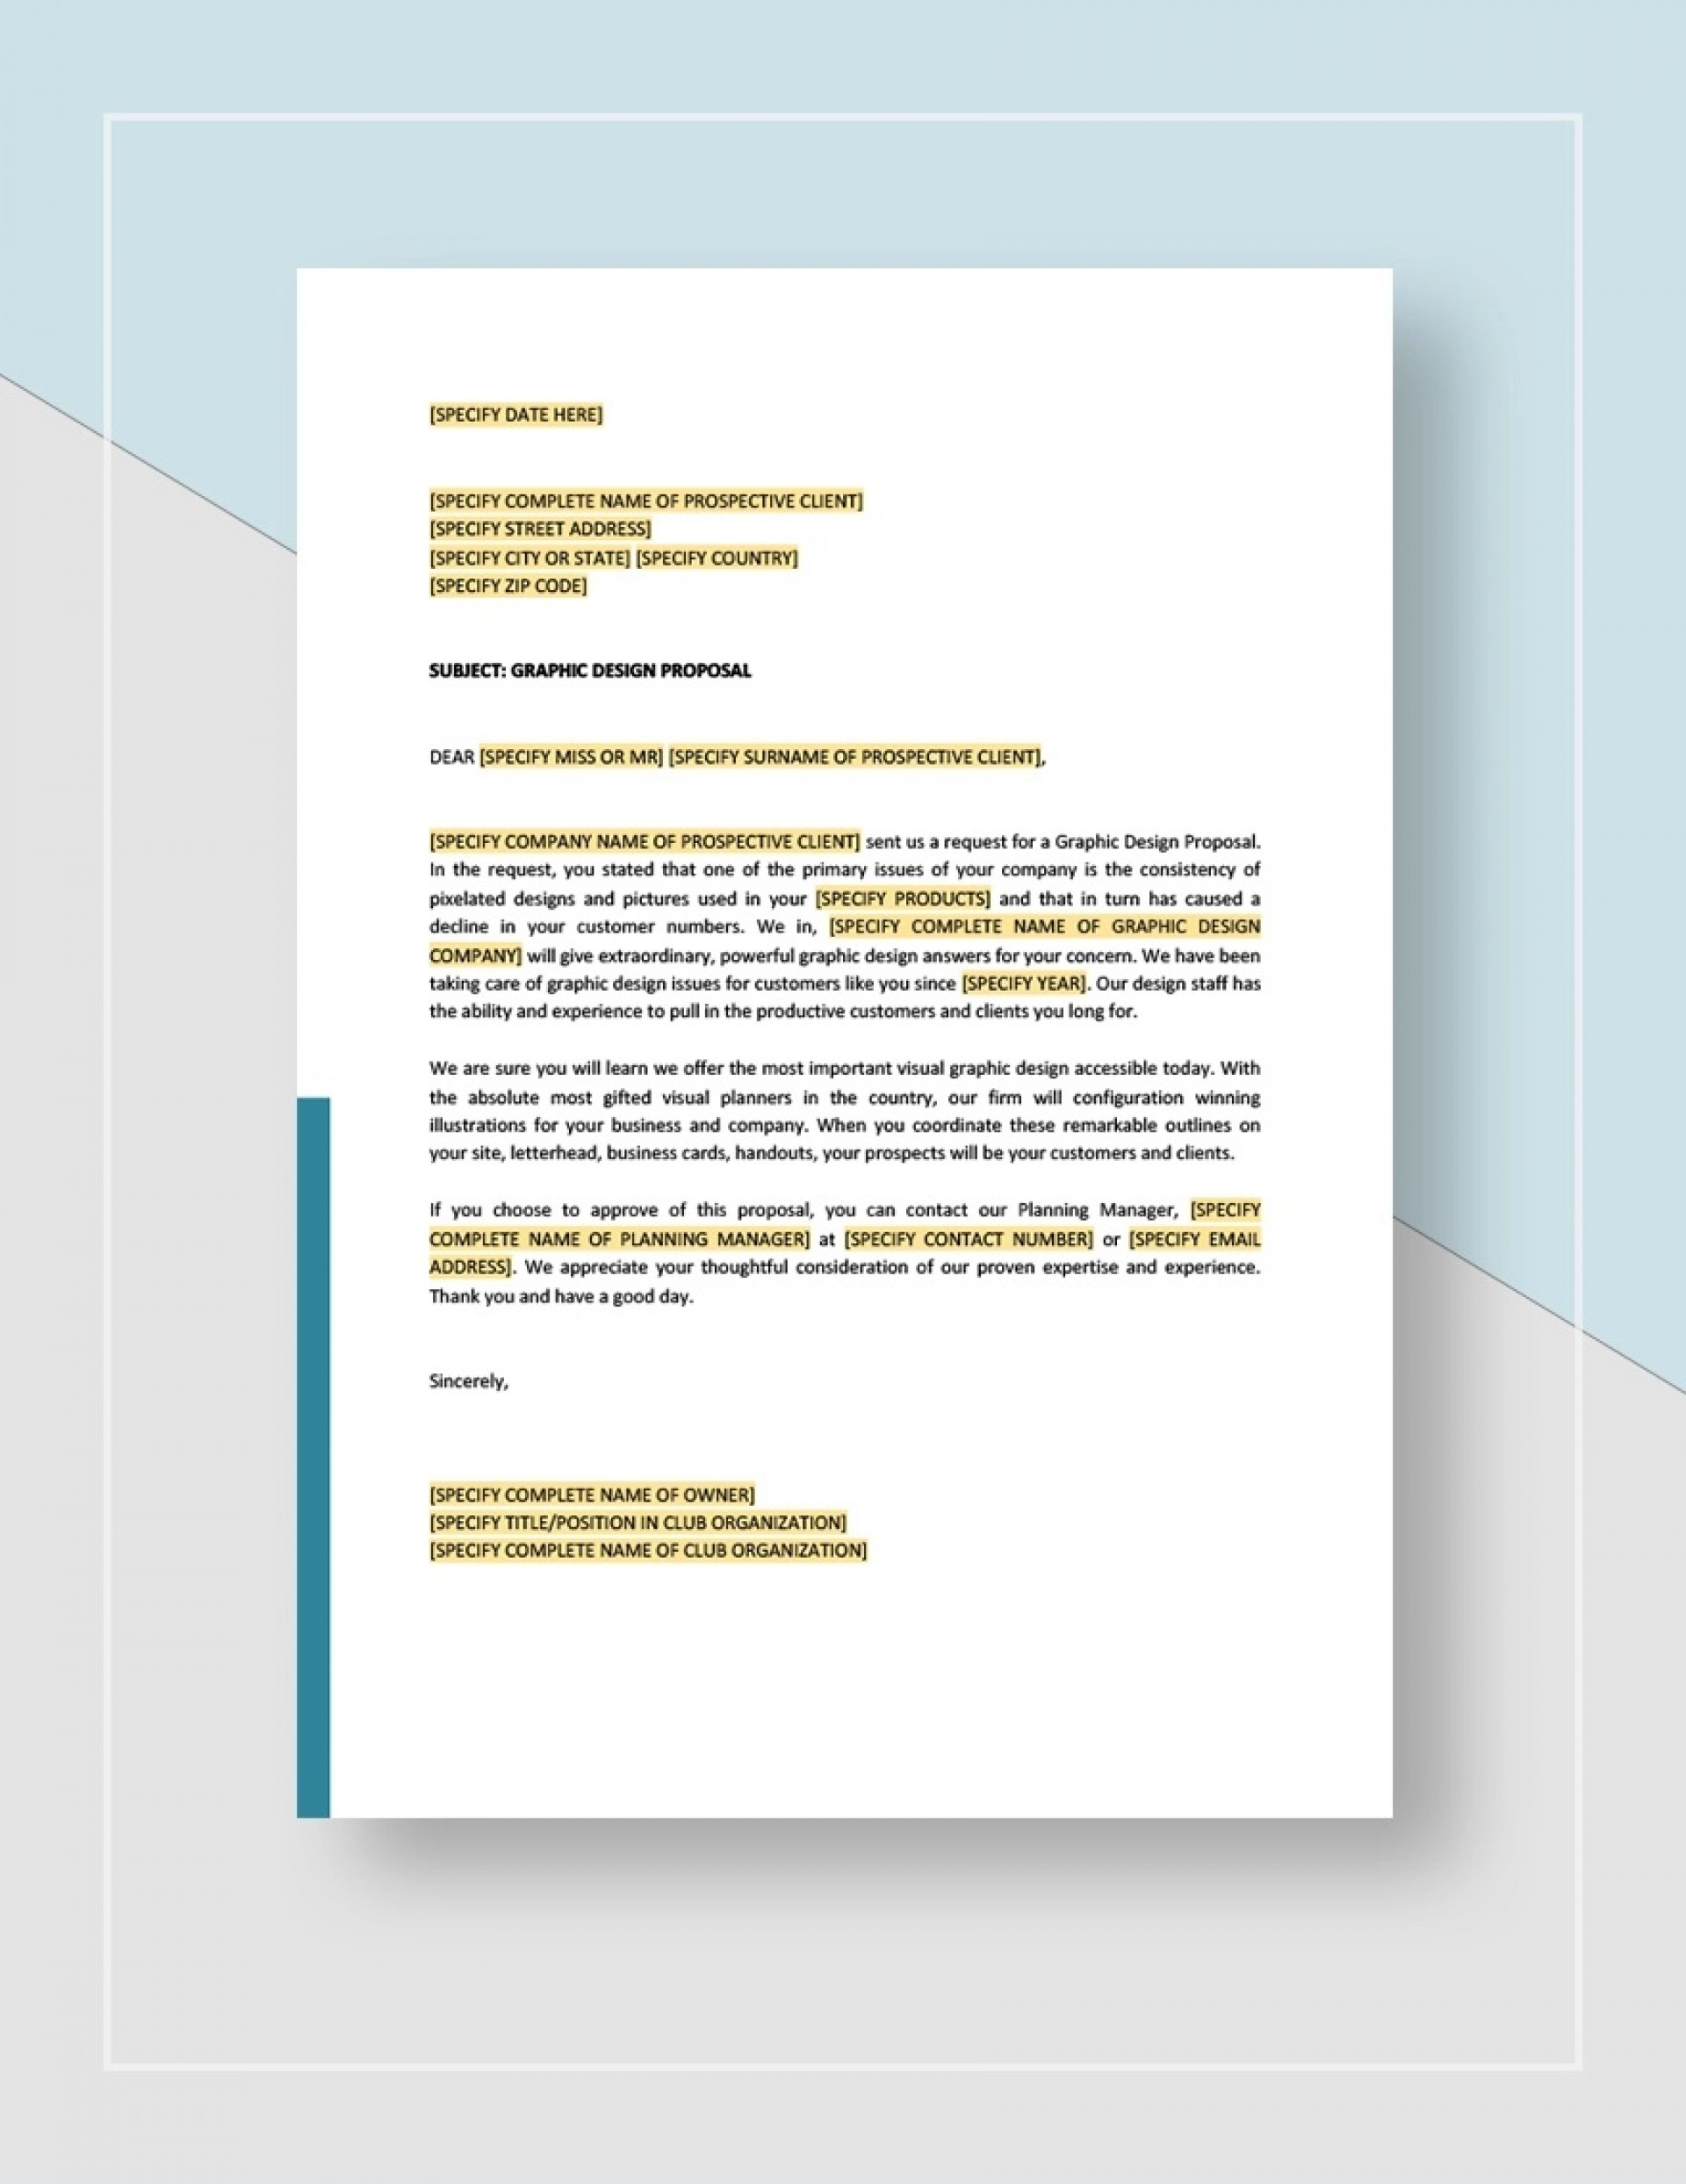 Graphic Design Proposal Template Sample Idea Jpg  Free Freelance1920